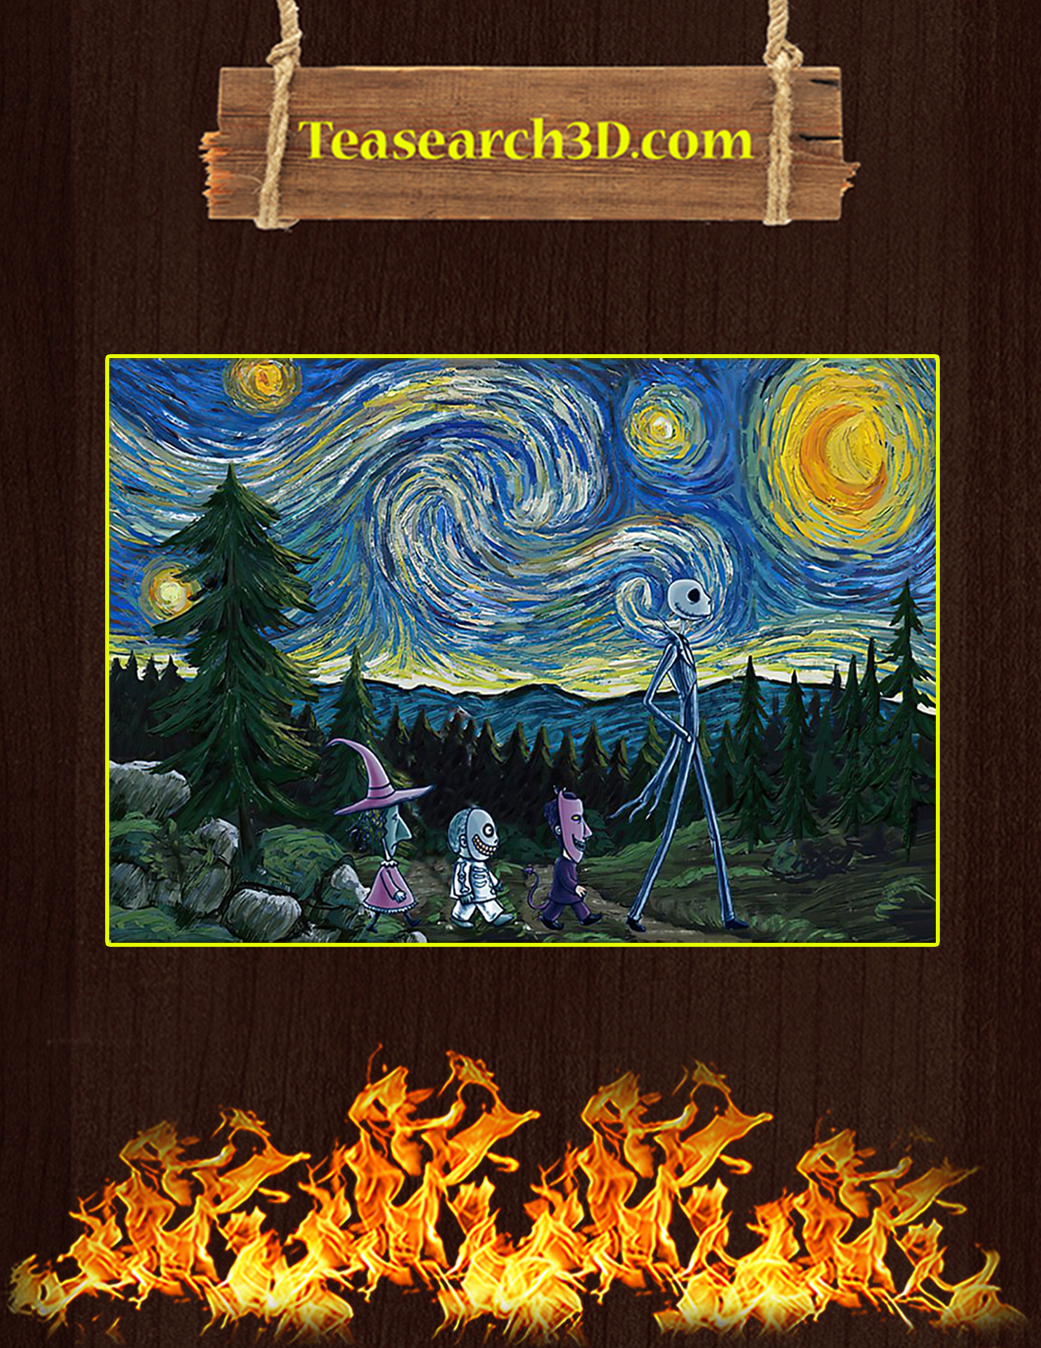 The nightmare before christmas starry night van gogh poster A1